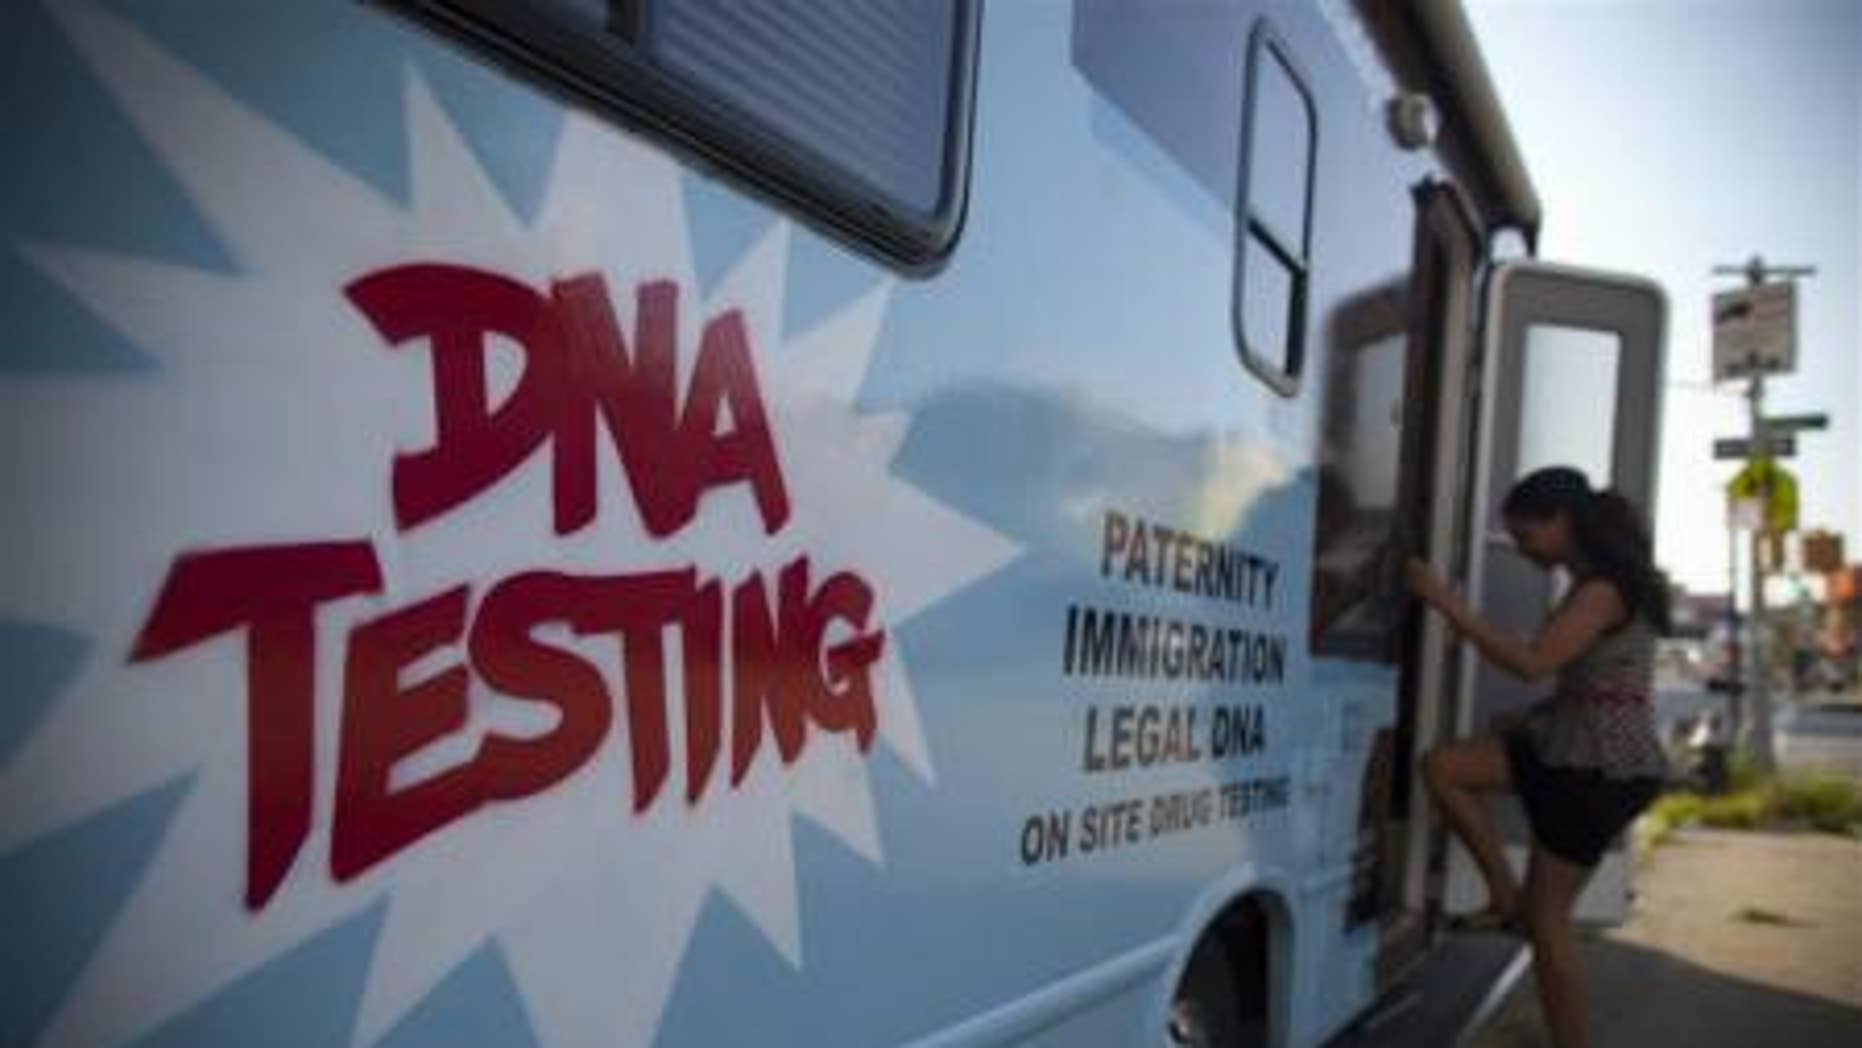 """A woman enters the """"Who's Your Daddy?"""" DNA testing van in the Bronx neighborhood of New York."""